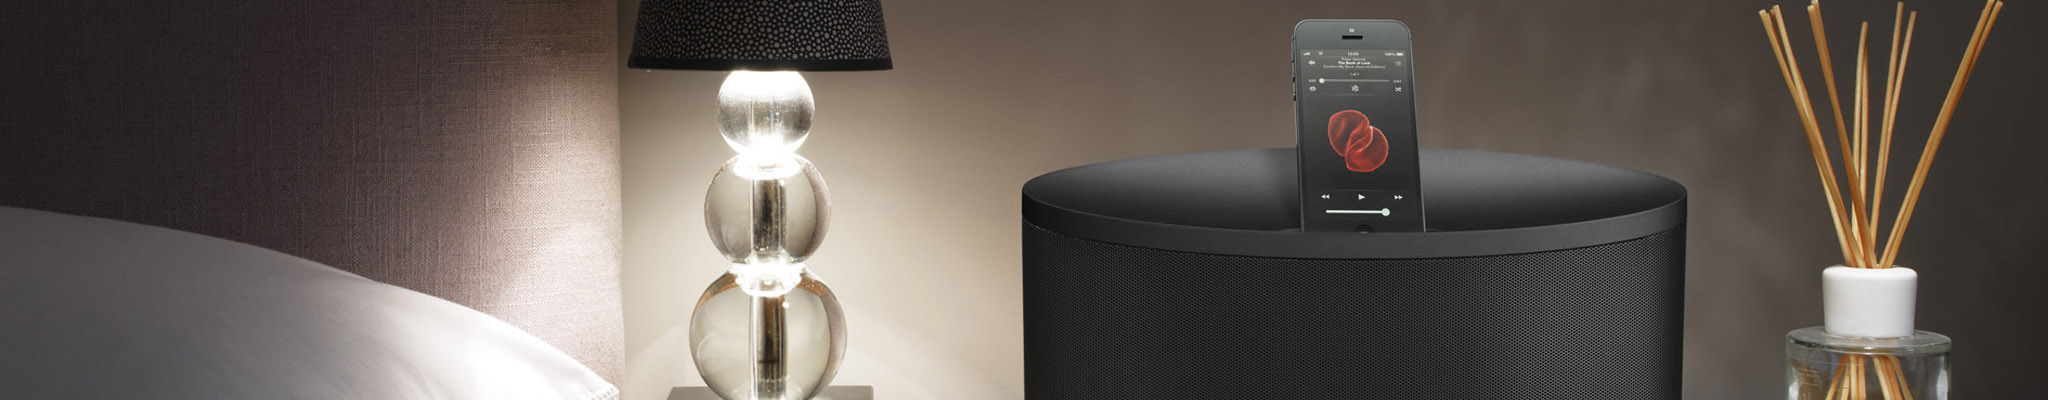 Bowers_Wilkins_Z2_Black_iPhone5_bedside_table